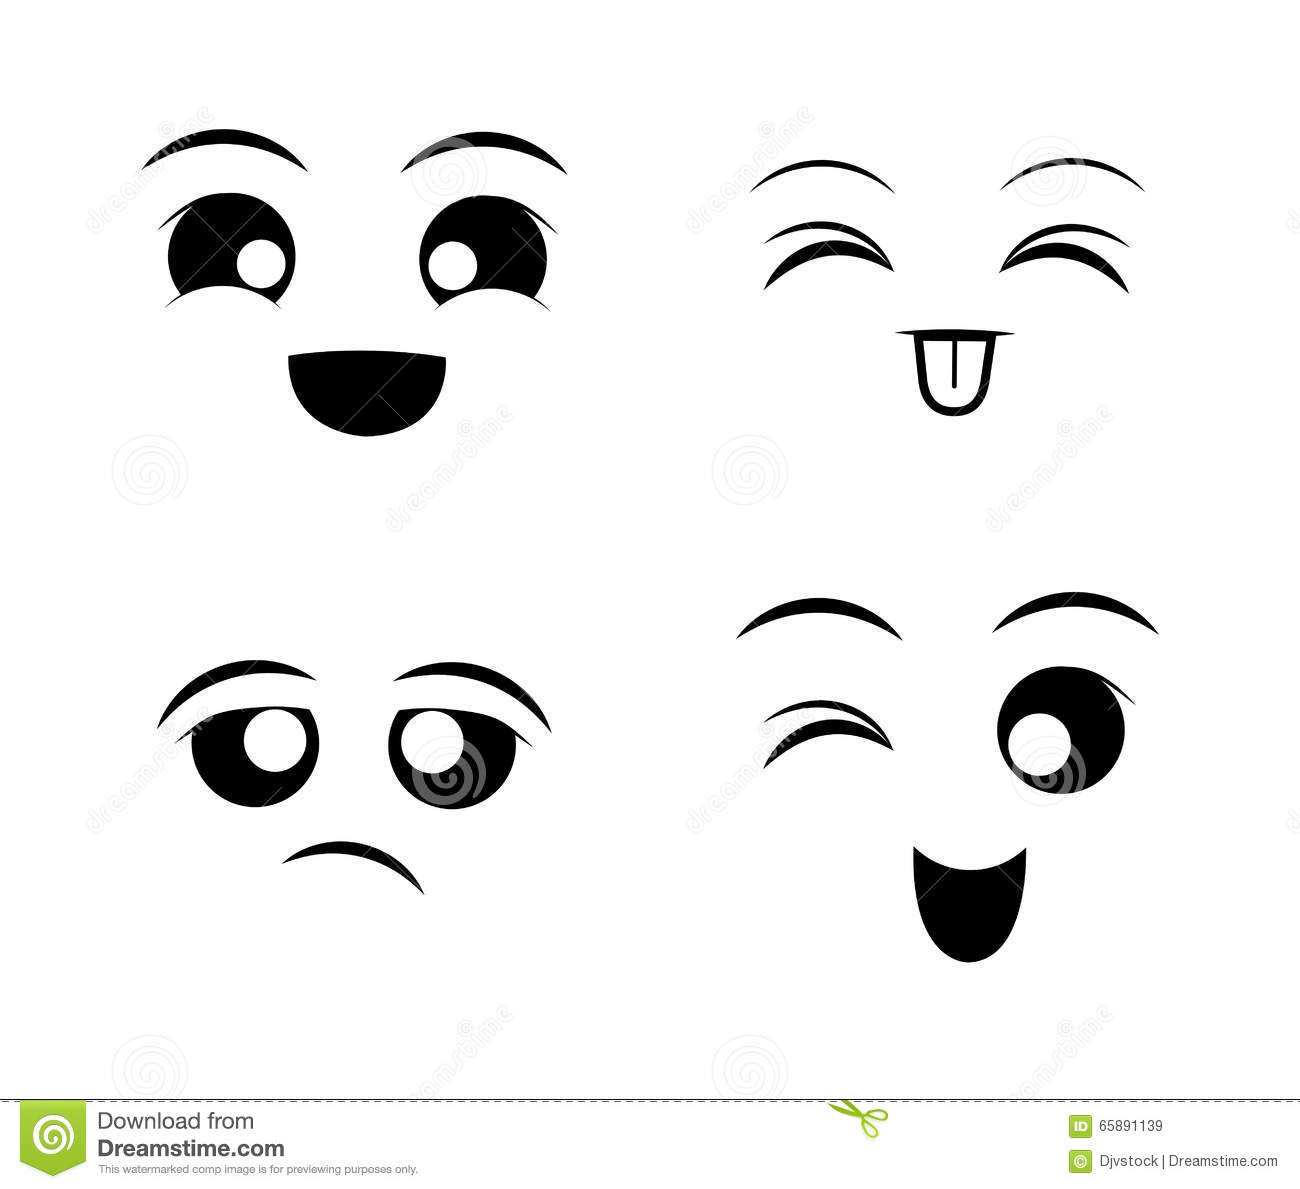 Candelon Cheminees Venerque Cartoon Faces Clip Art Black And White Beard Name